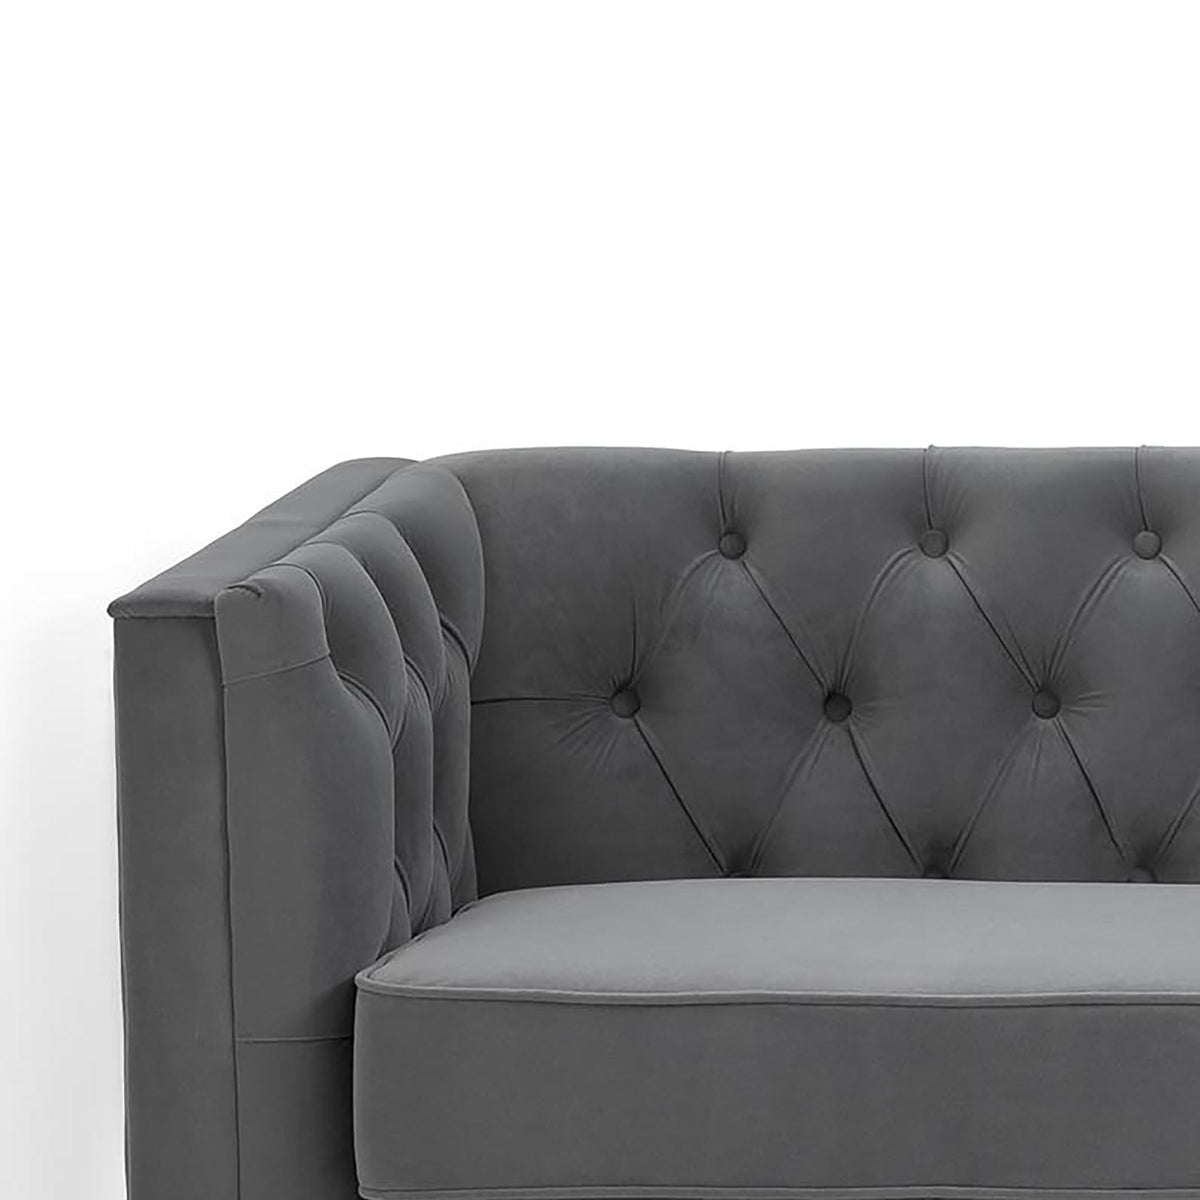 Eliza Grey 3 Seater Chesterfield Sofa - Close up of arm rest